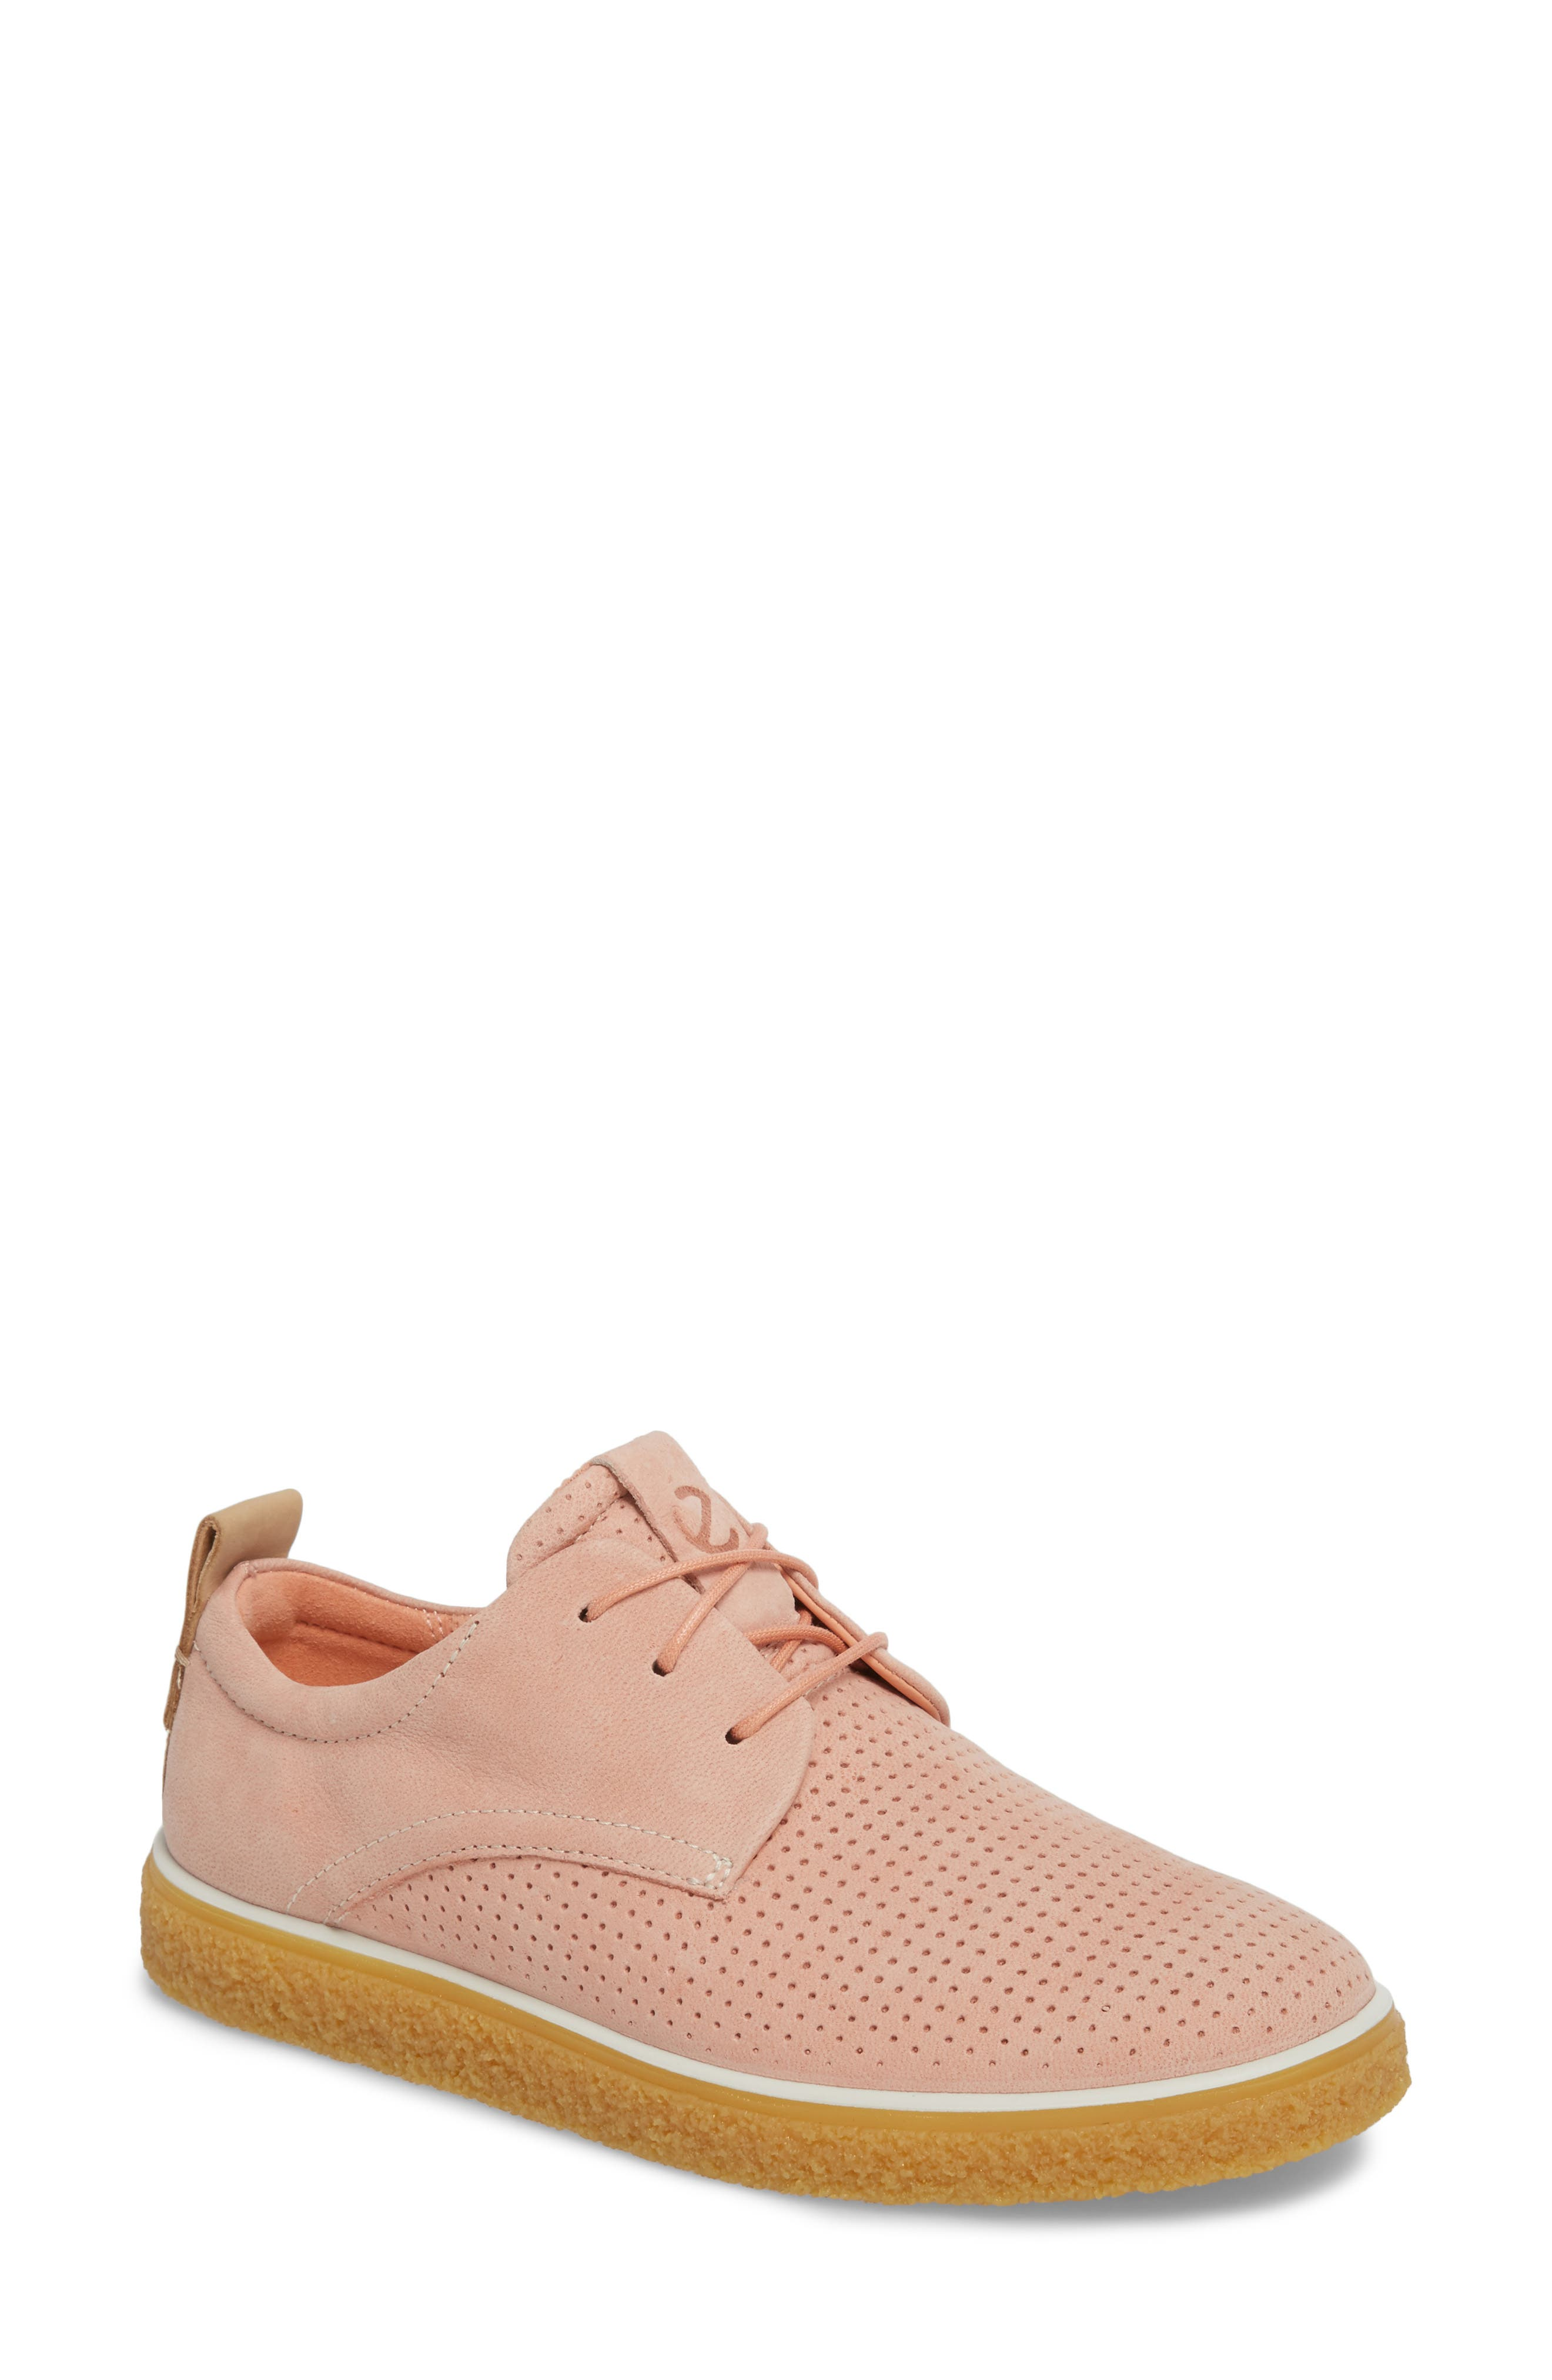 Crepetray Sneaker,                             Main thumbnail 1, color,                             MUTED CLAY POWDER LEATHER